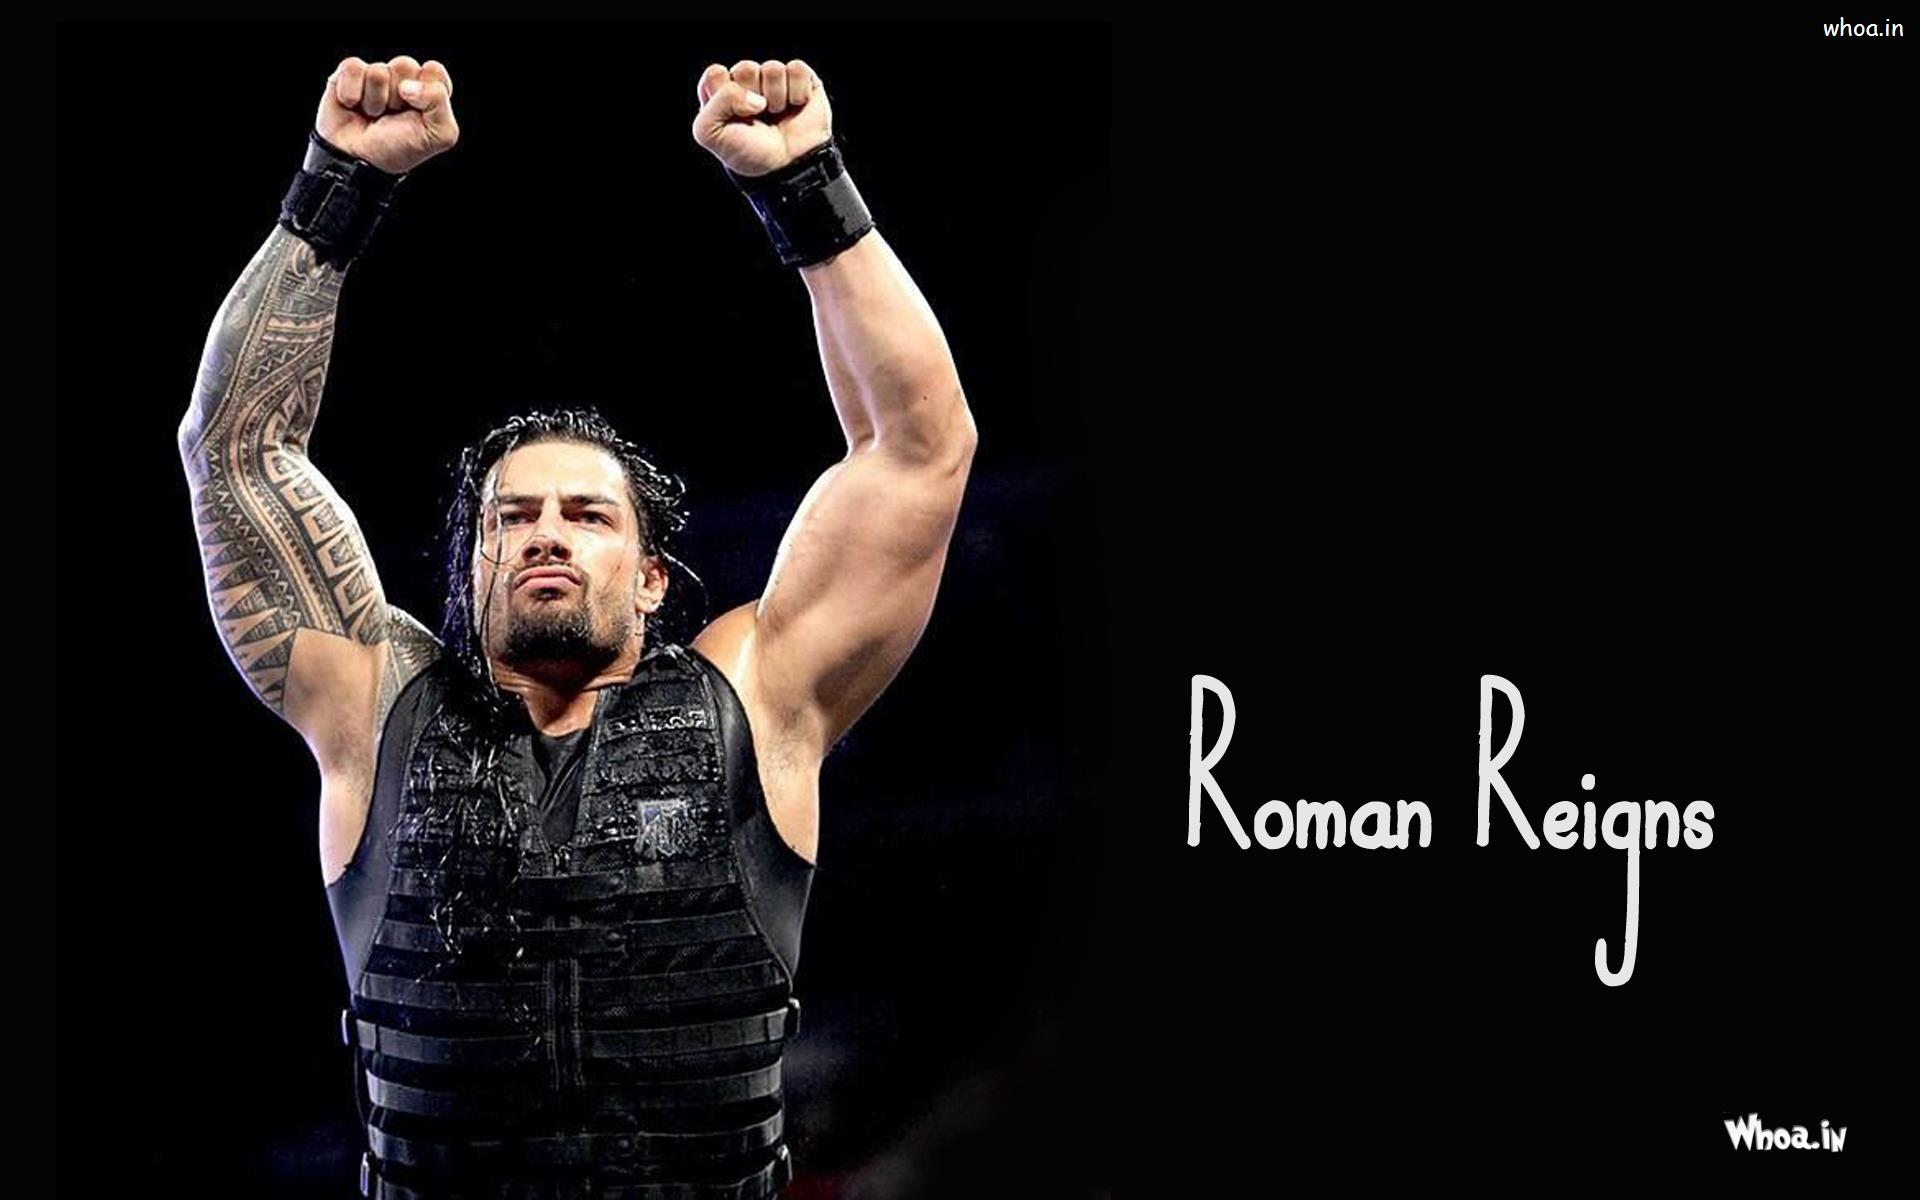 Roman Reigns Wallpaper Hd